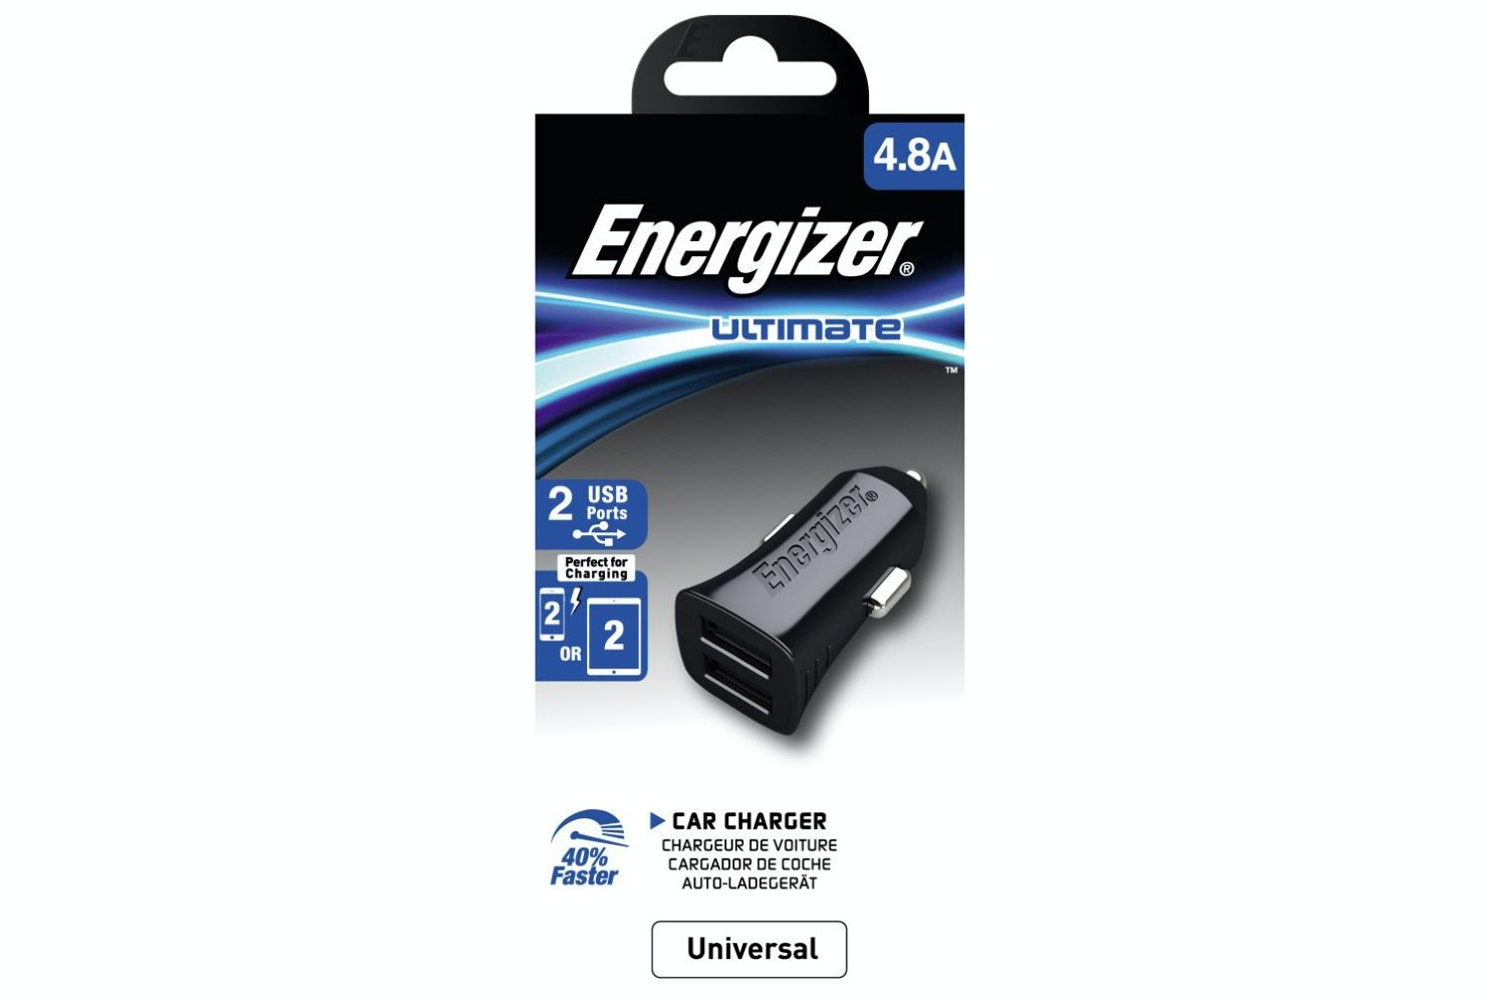 Energizer 4.8A Dual USB Car Charger | Black